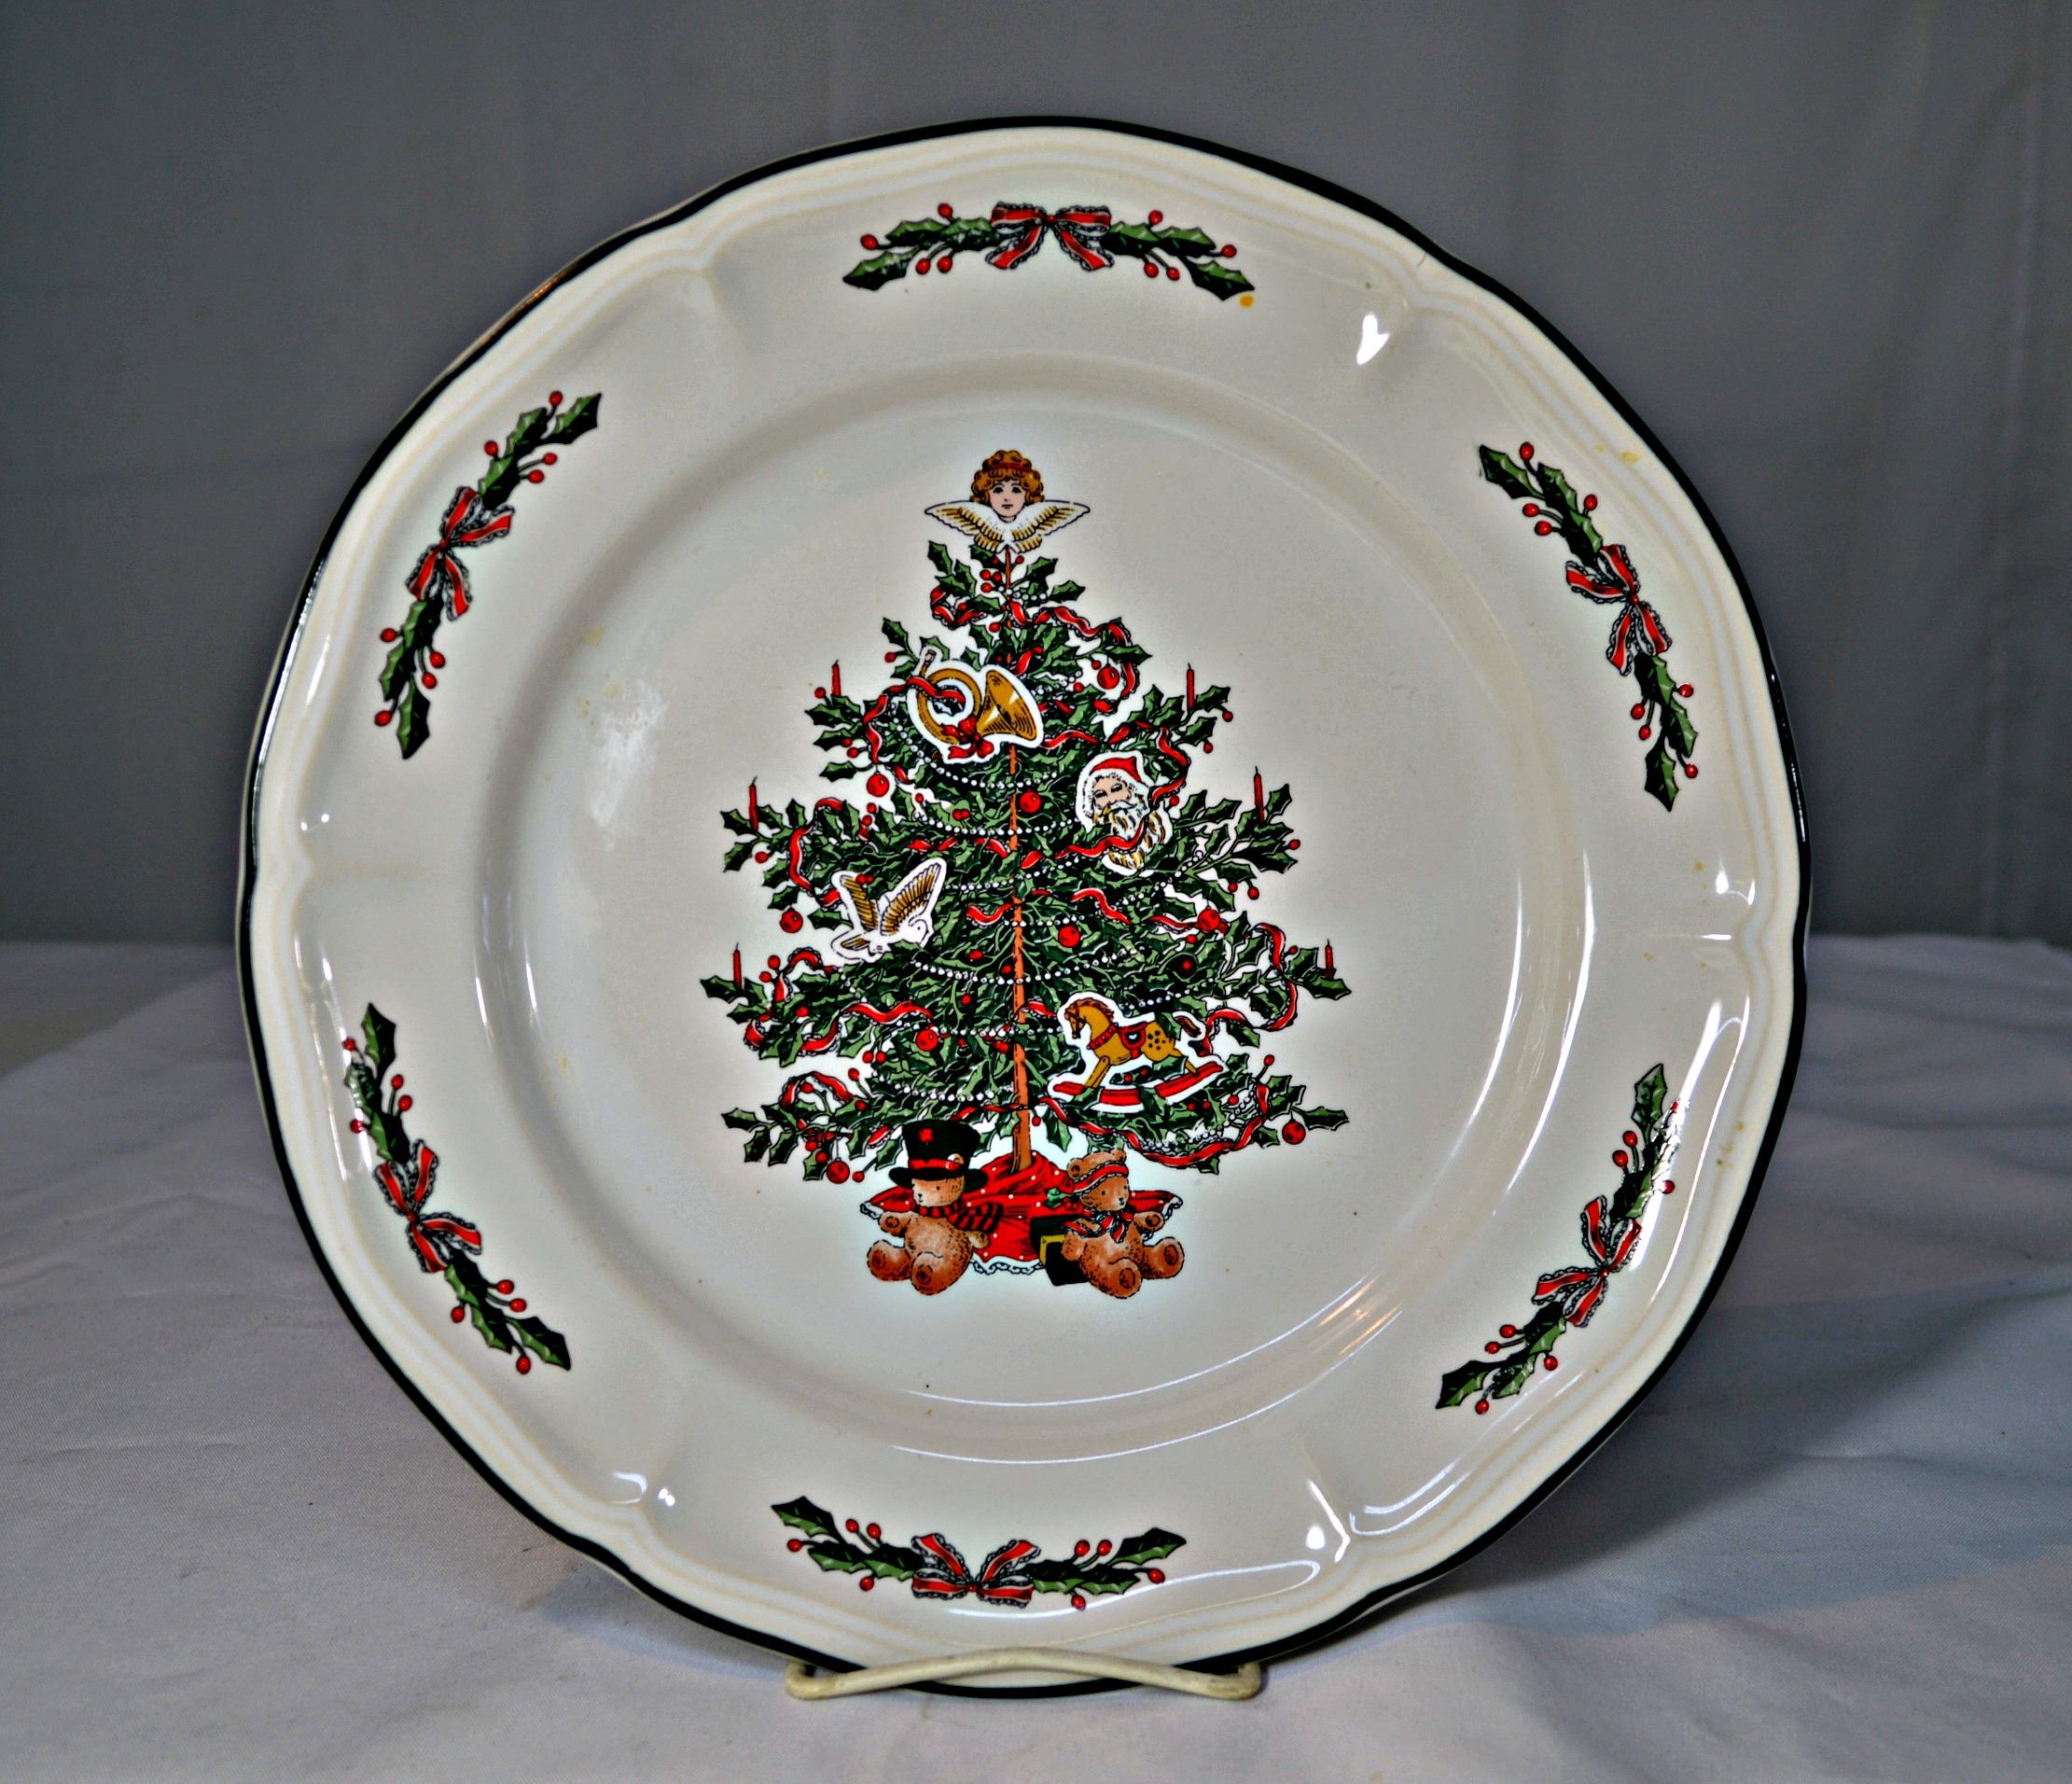 Vintage Christmas Dinnerware - 9 Pieces - Image 7 of 8  sc 1 st  Chairish : cheap christmas dinnerware - pezcame.com